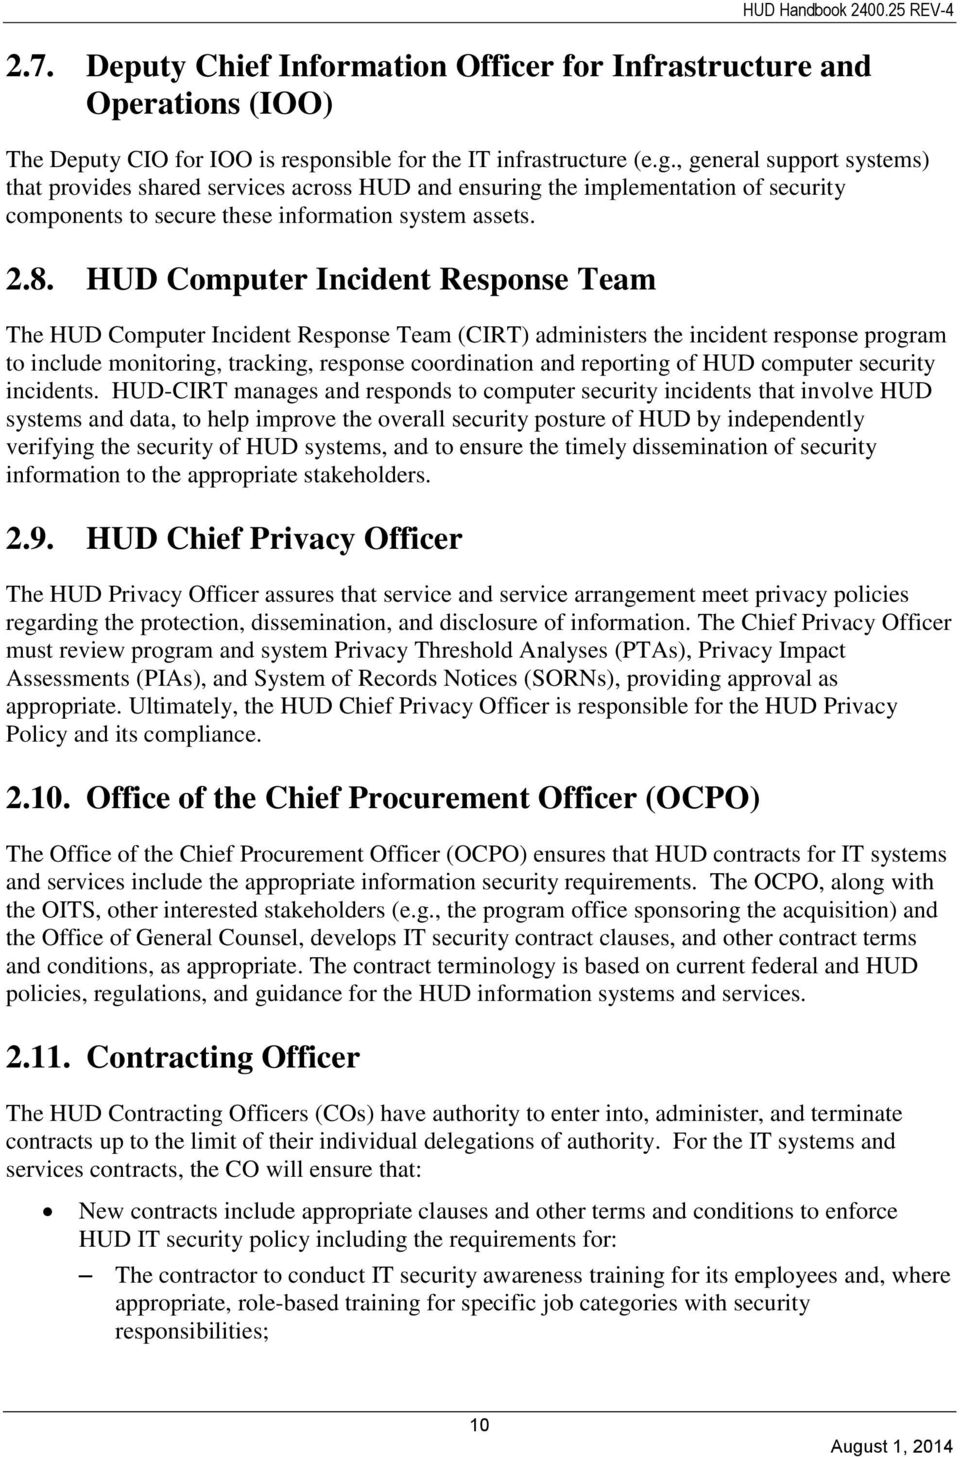 HUD Computer Incident Response Team The HUD Computer Incident Response Team (CIRT) administers the incident response program to include monitoring, tracking, response coordination and reporting of